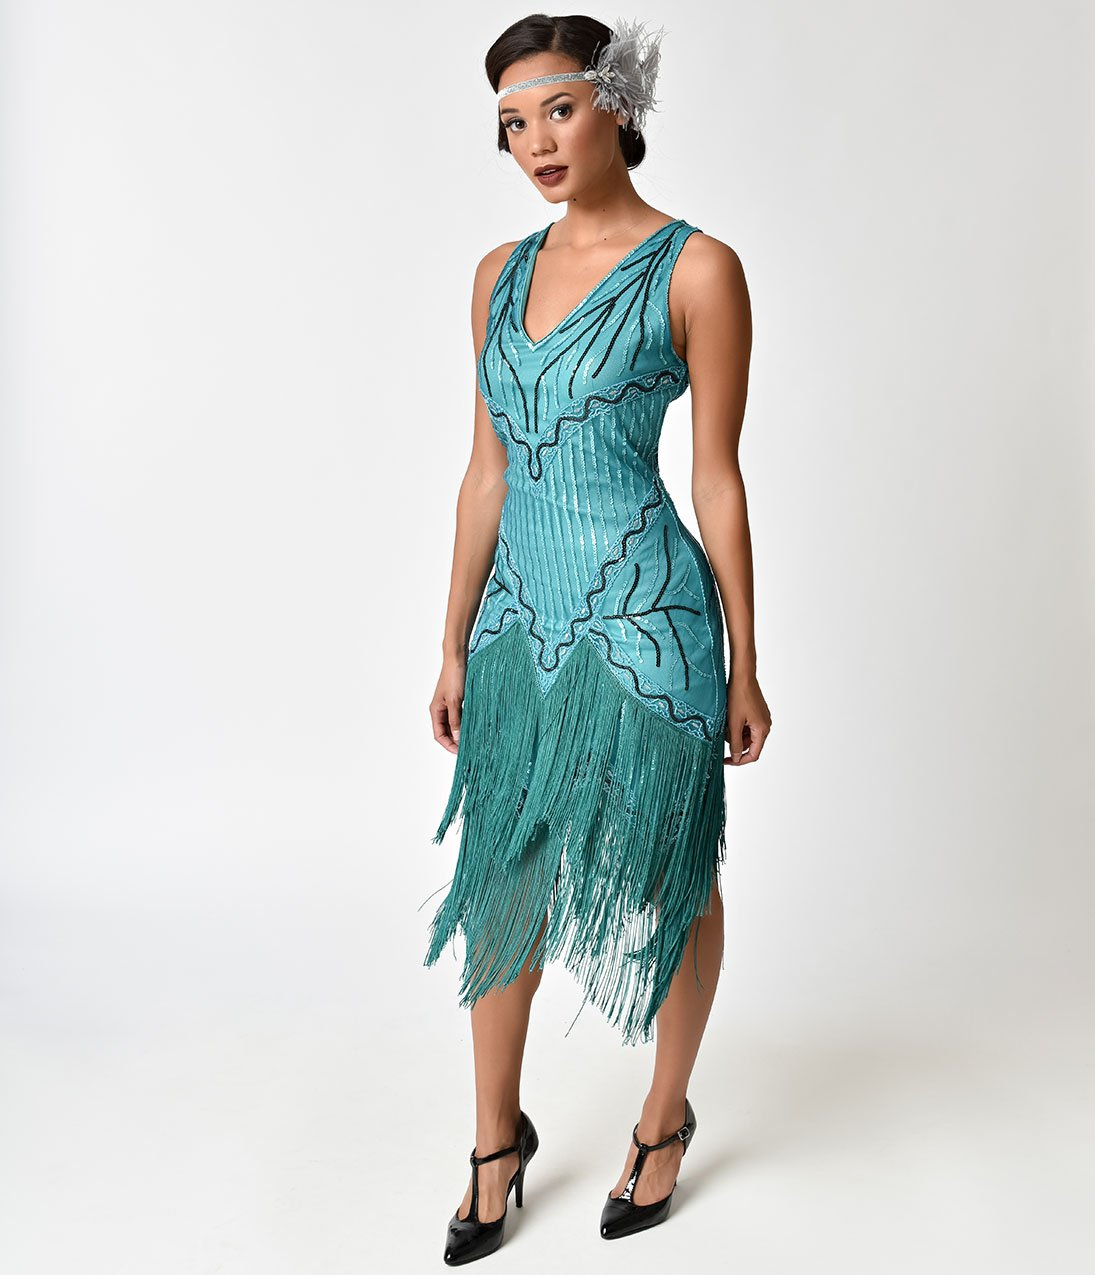 1920s Style Costumes, Flapper Dresses, Gangster Costumes ...